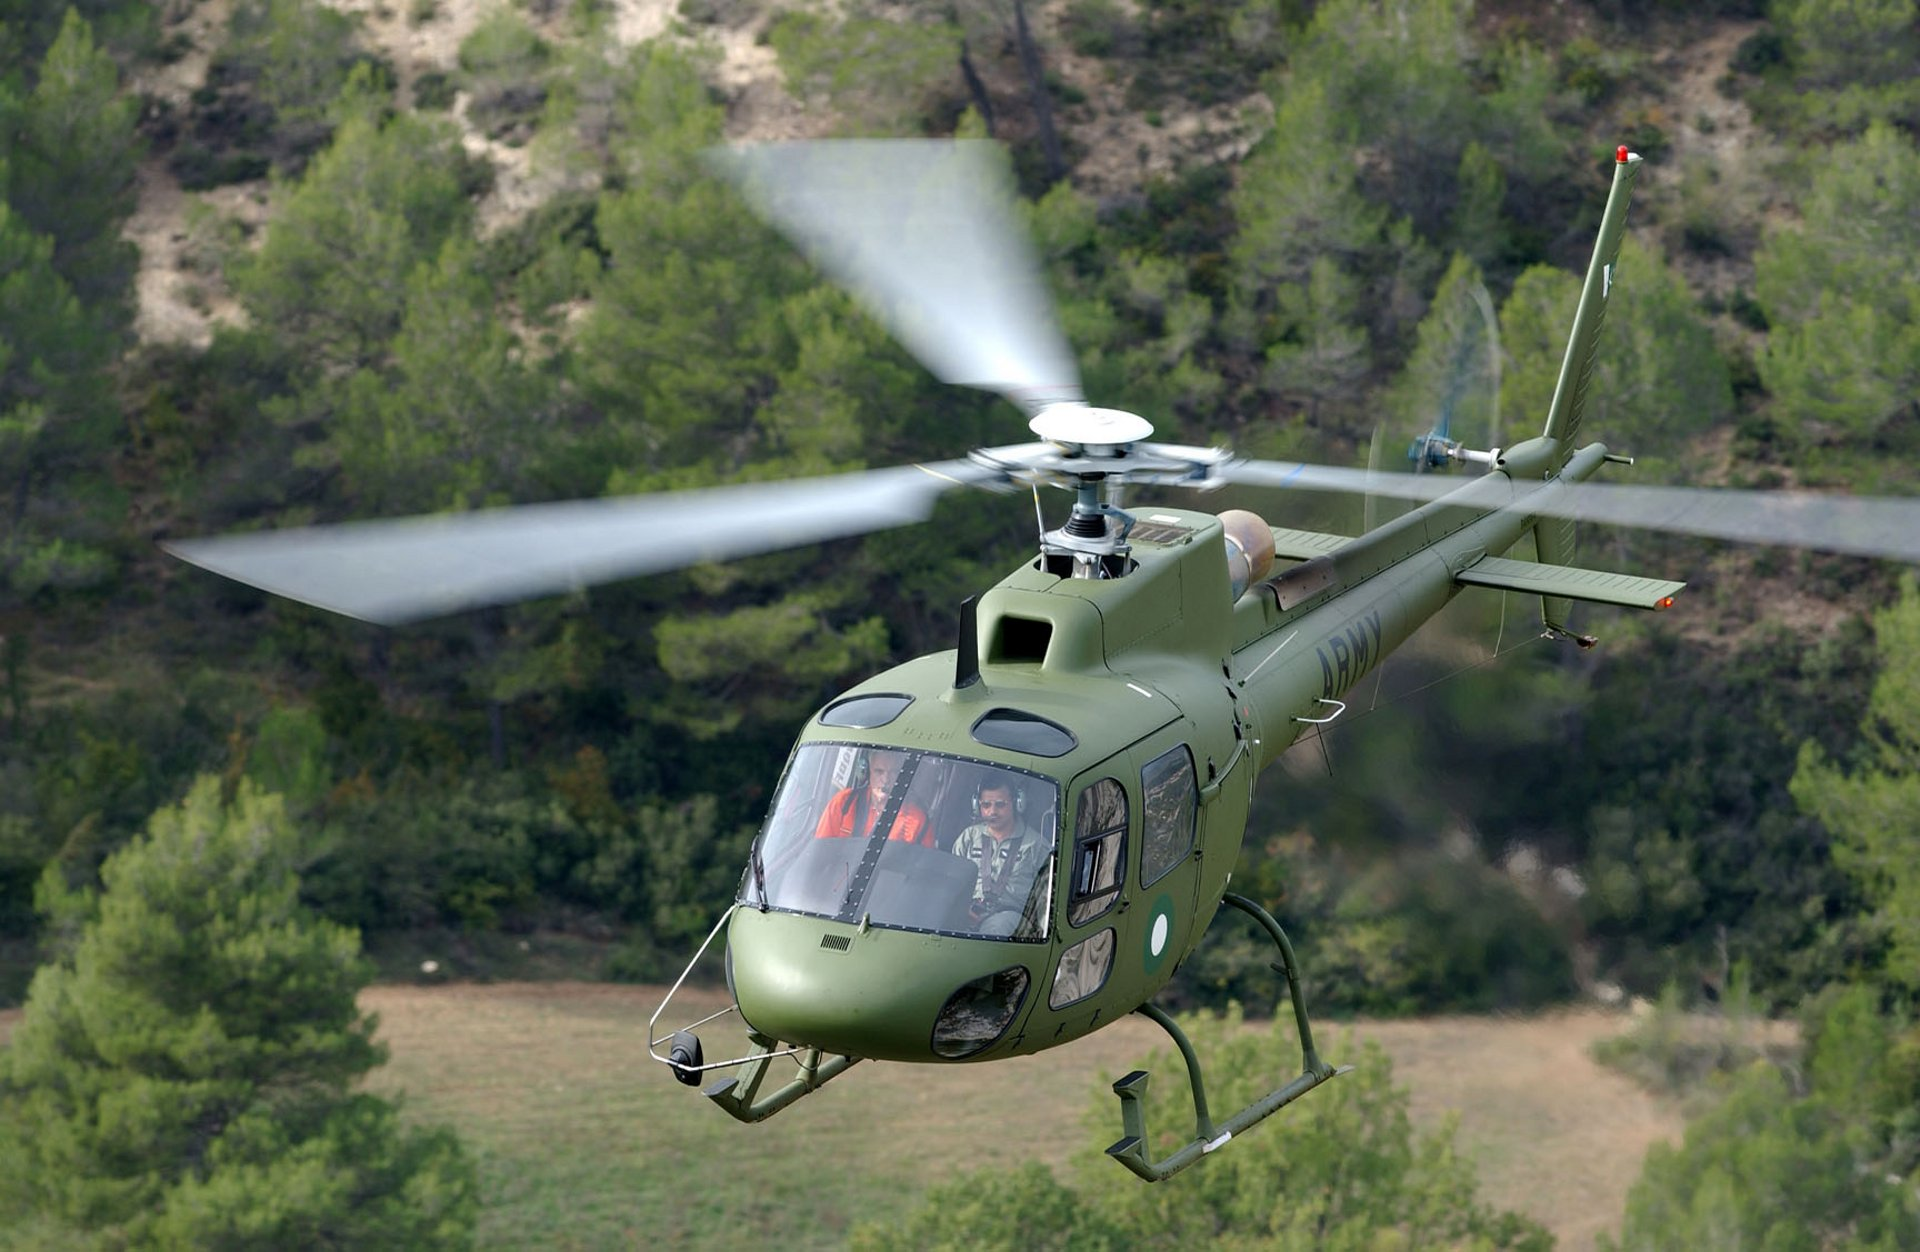 Airbus' two-tonne H125M (formerly the AS550 C3e Fennec) responds to military requirements for a cost-effective armed platform with a very small footprint and excellent manoeuvrability.